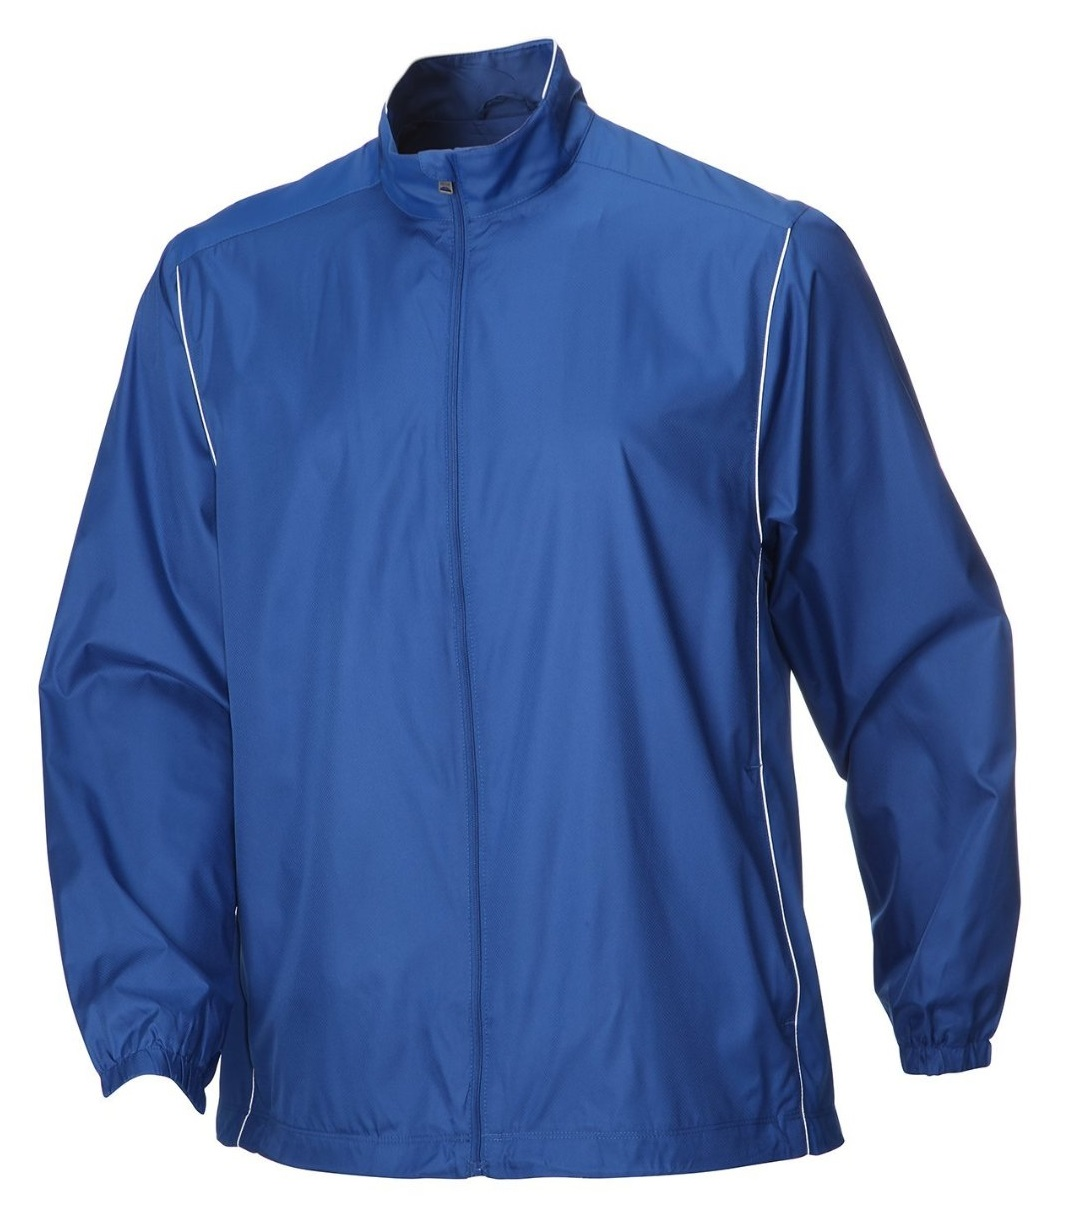 Mens Golf Jackets